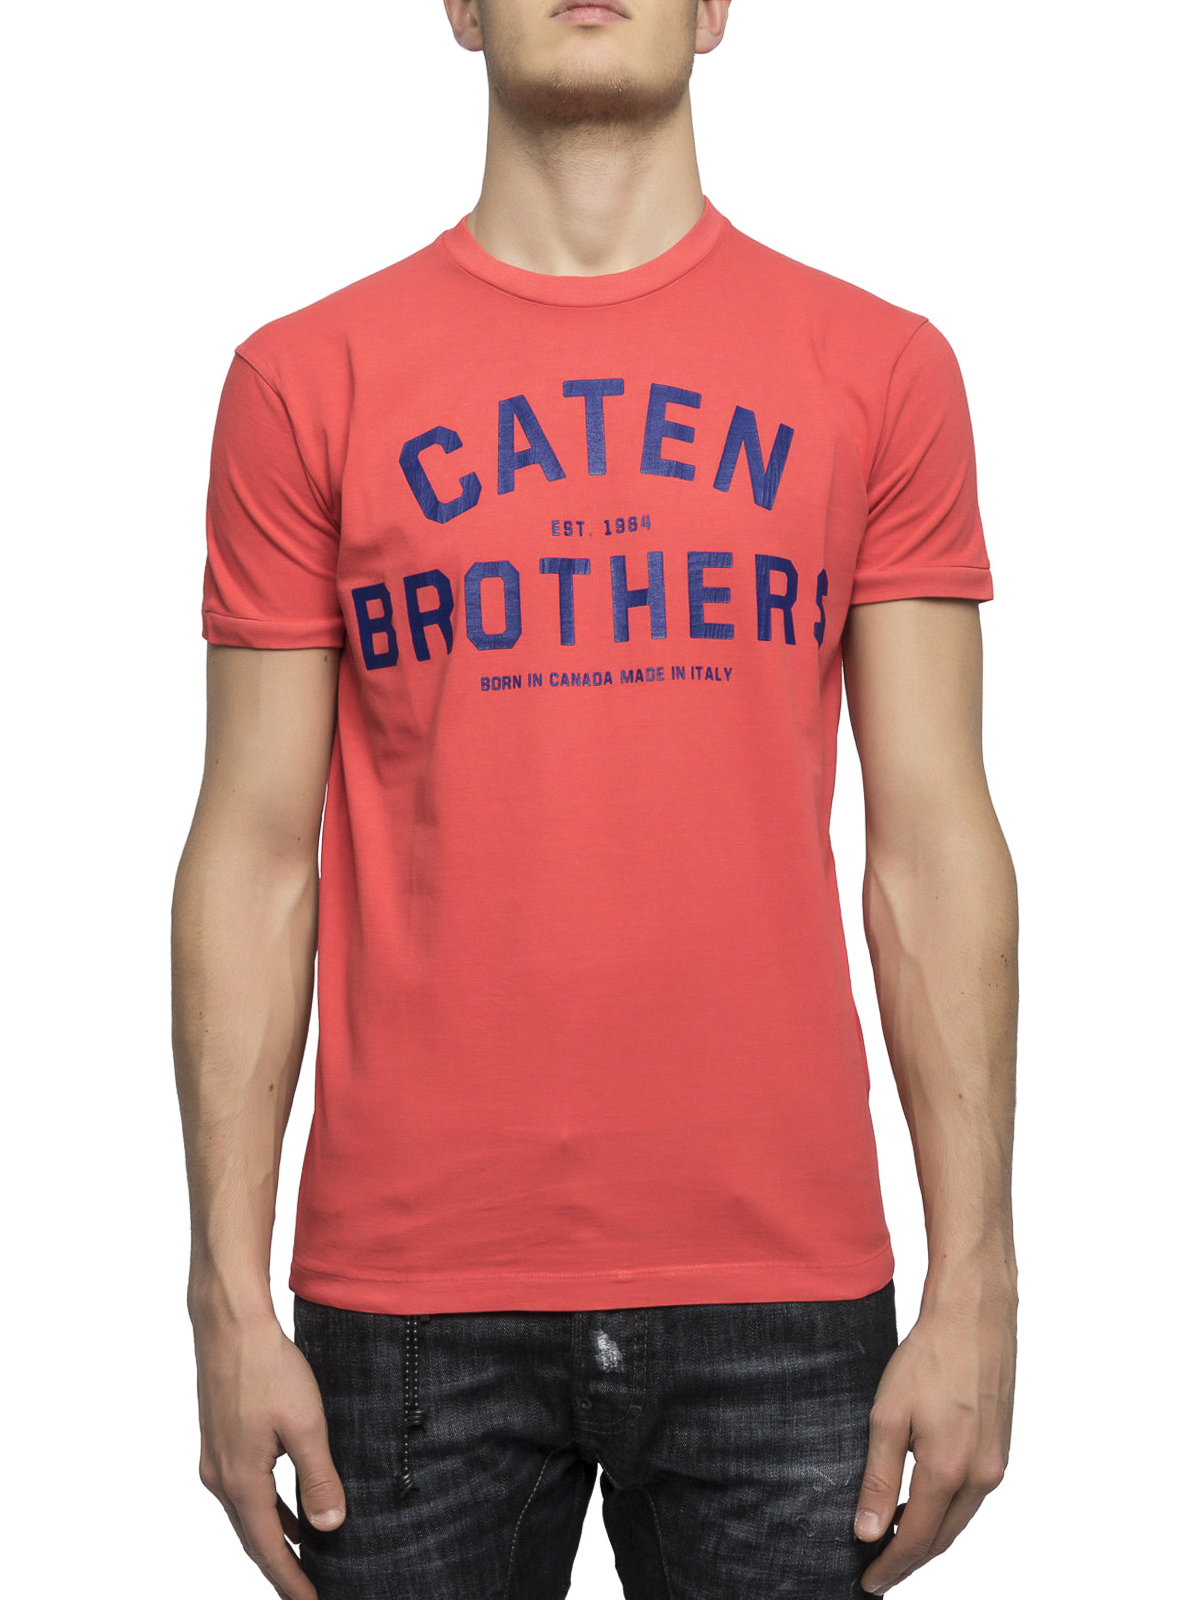 Brothers clothes online